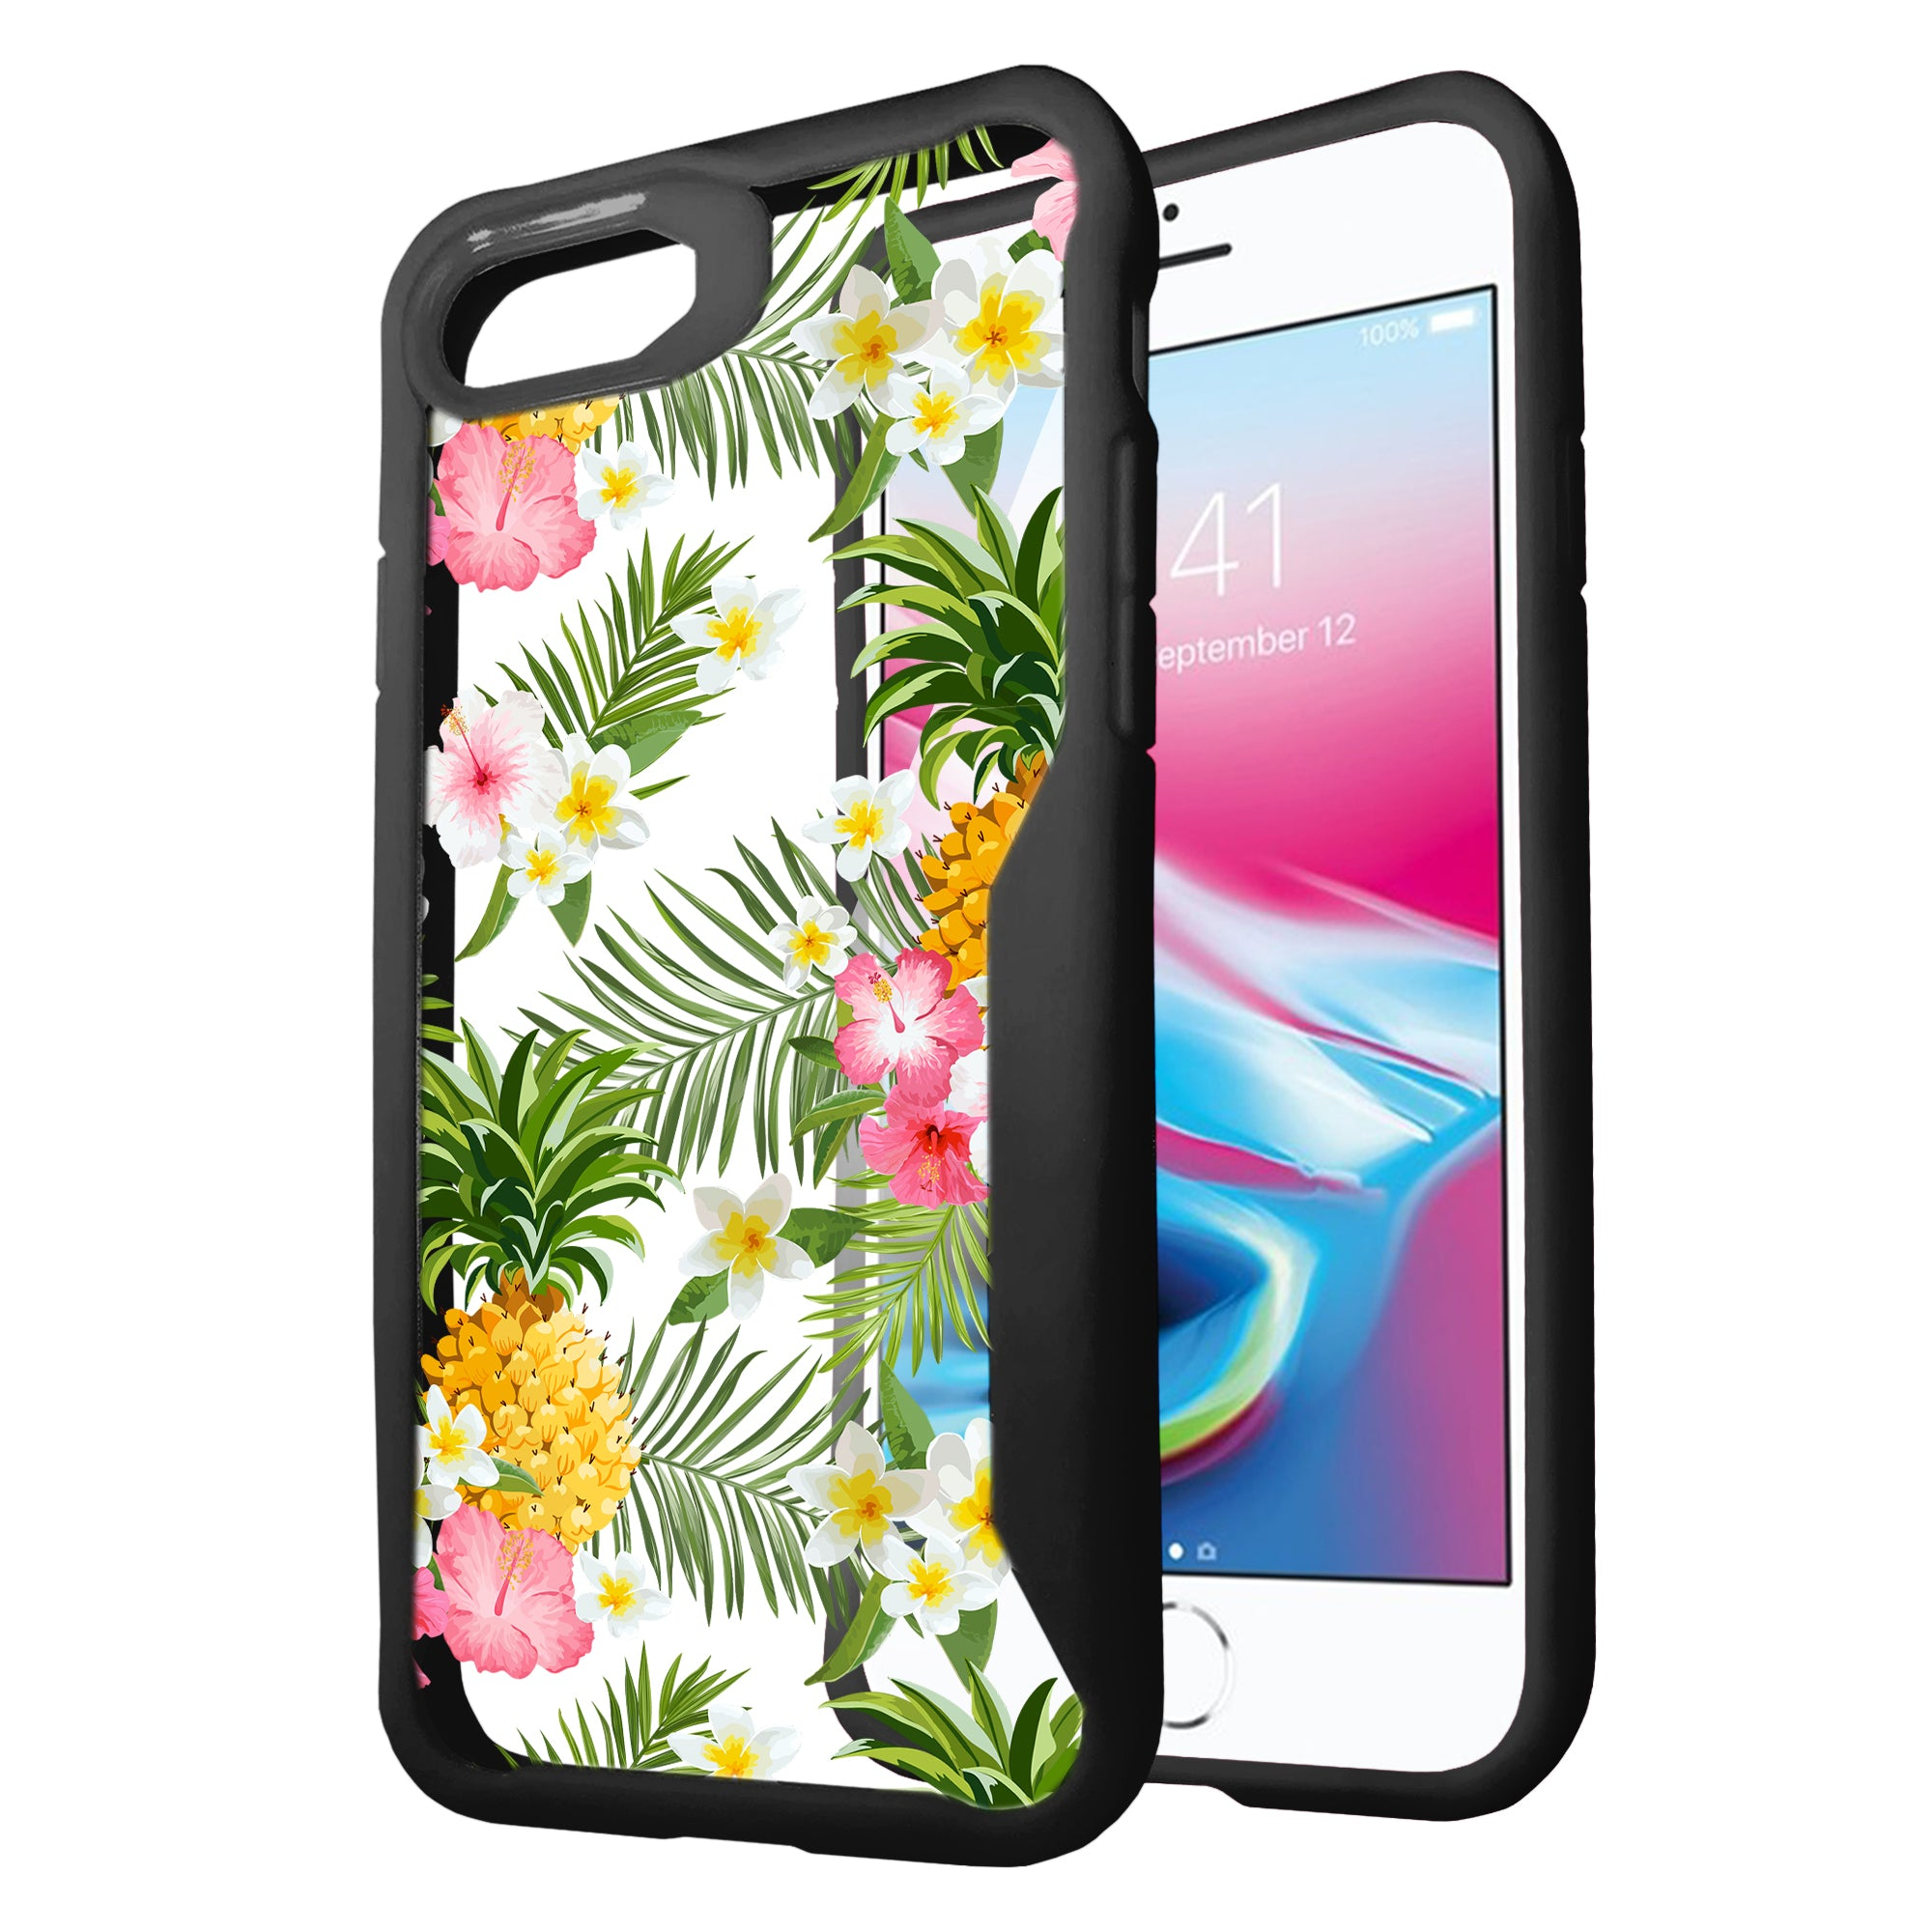 For-Apple-iPhone-7-iPhone-8-Clear-Case-w-Black-Silicone-Edges-Floral-Design thumbnail 9